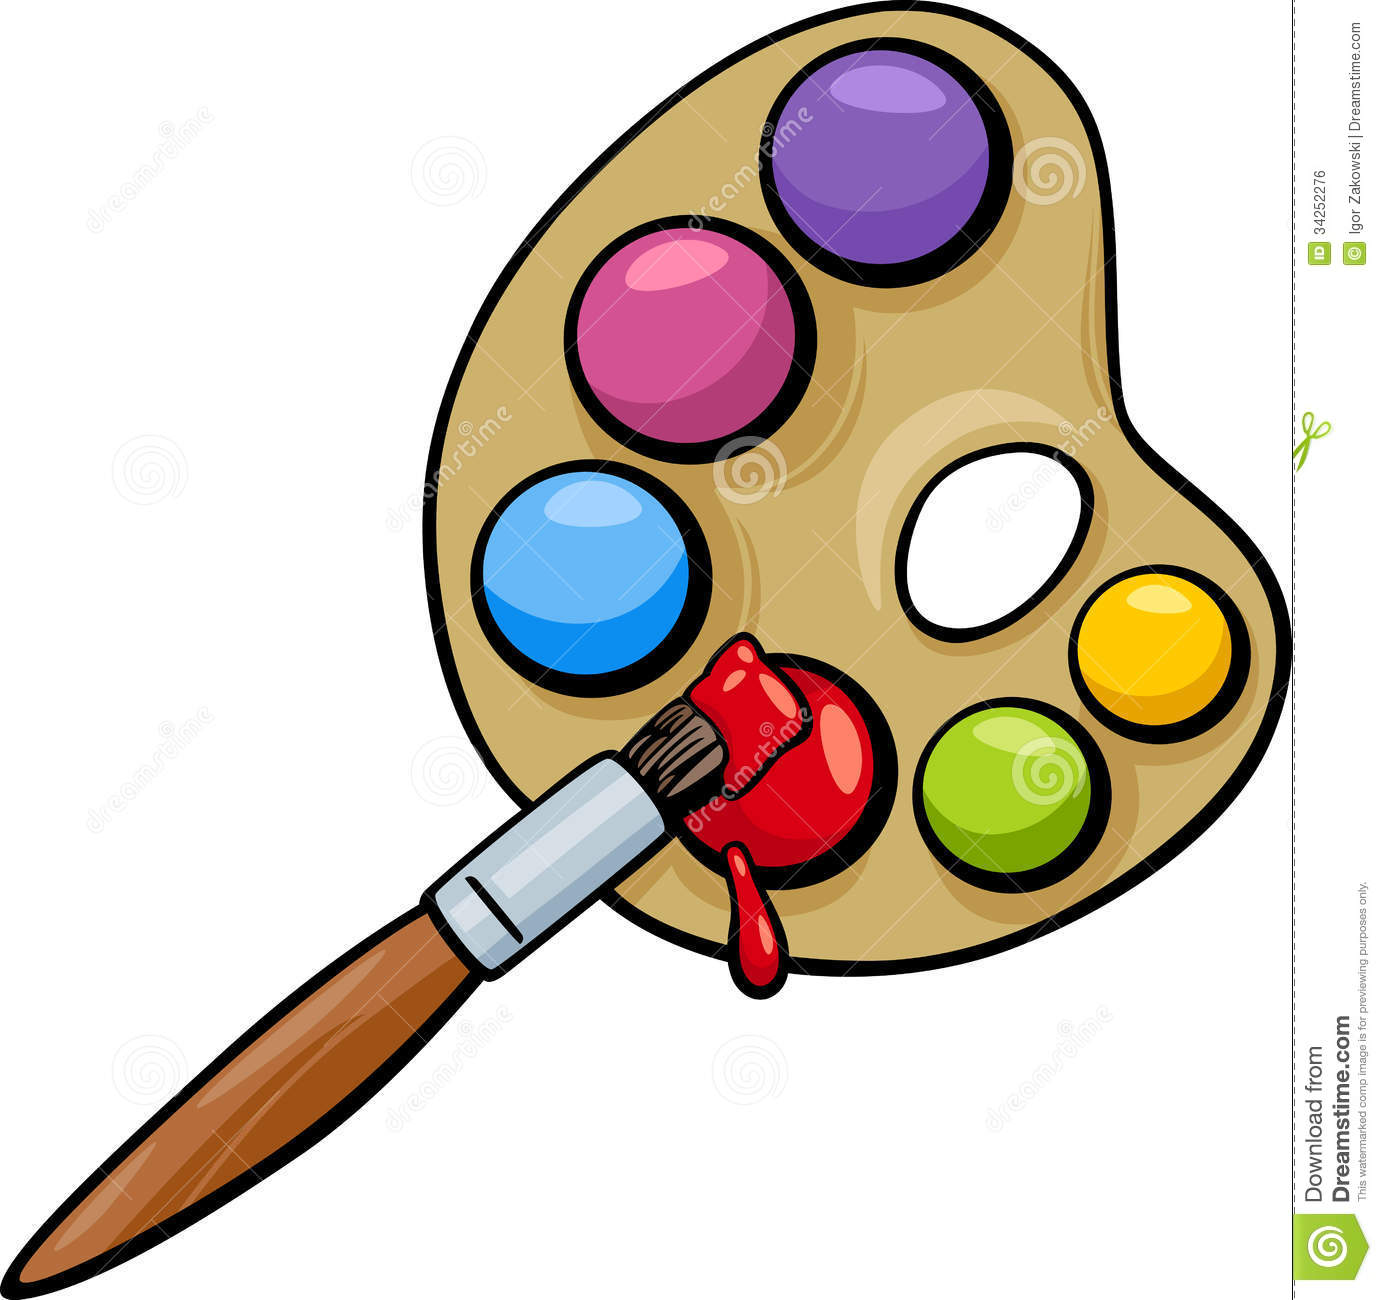 ... Illustration of Art Brush and Palette with Colorful Paints Clip Art